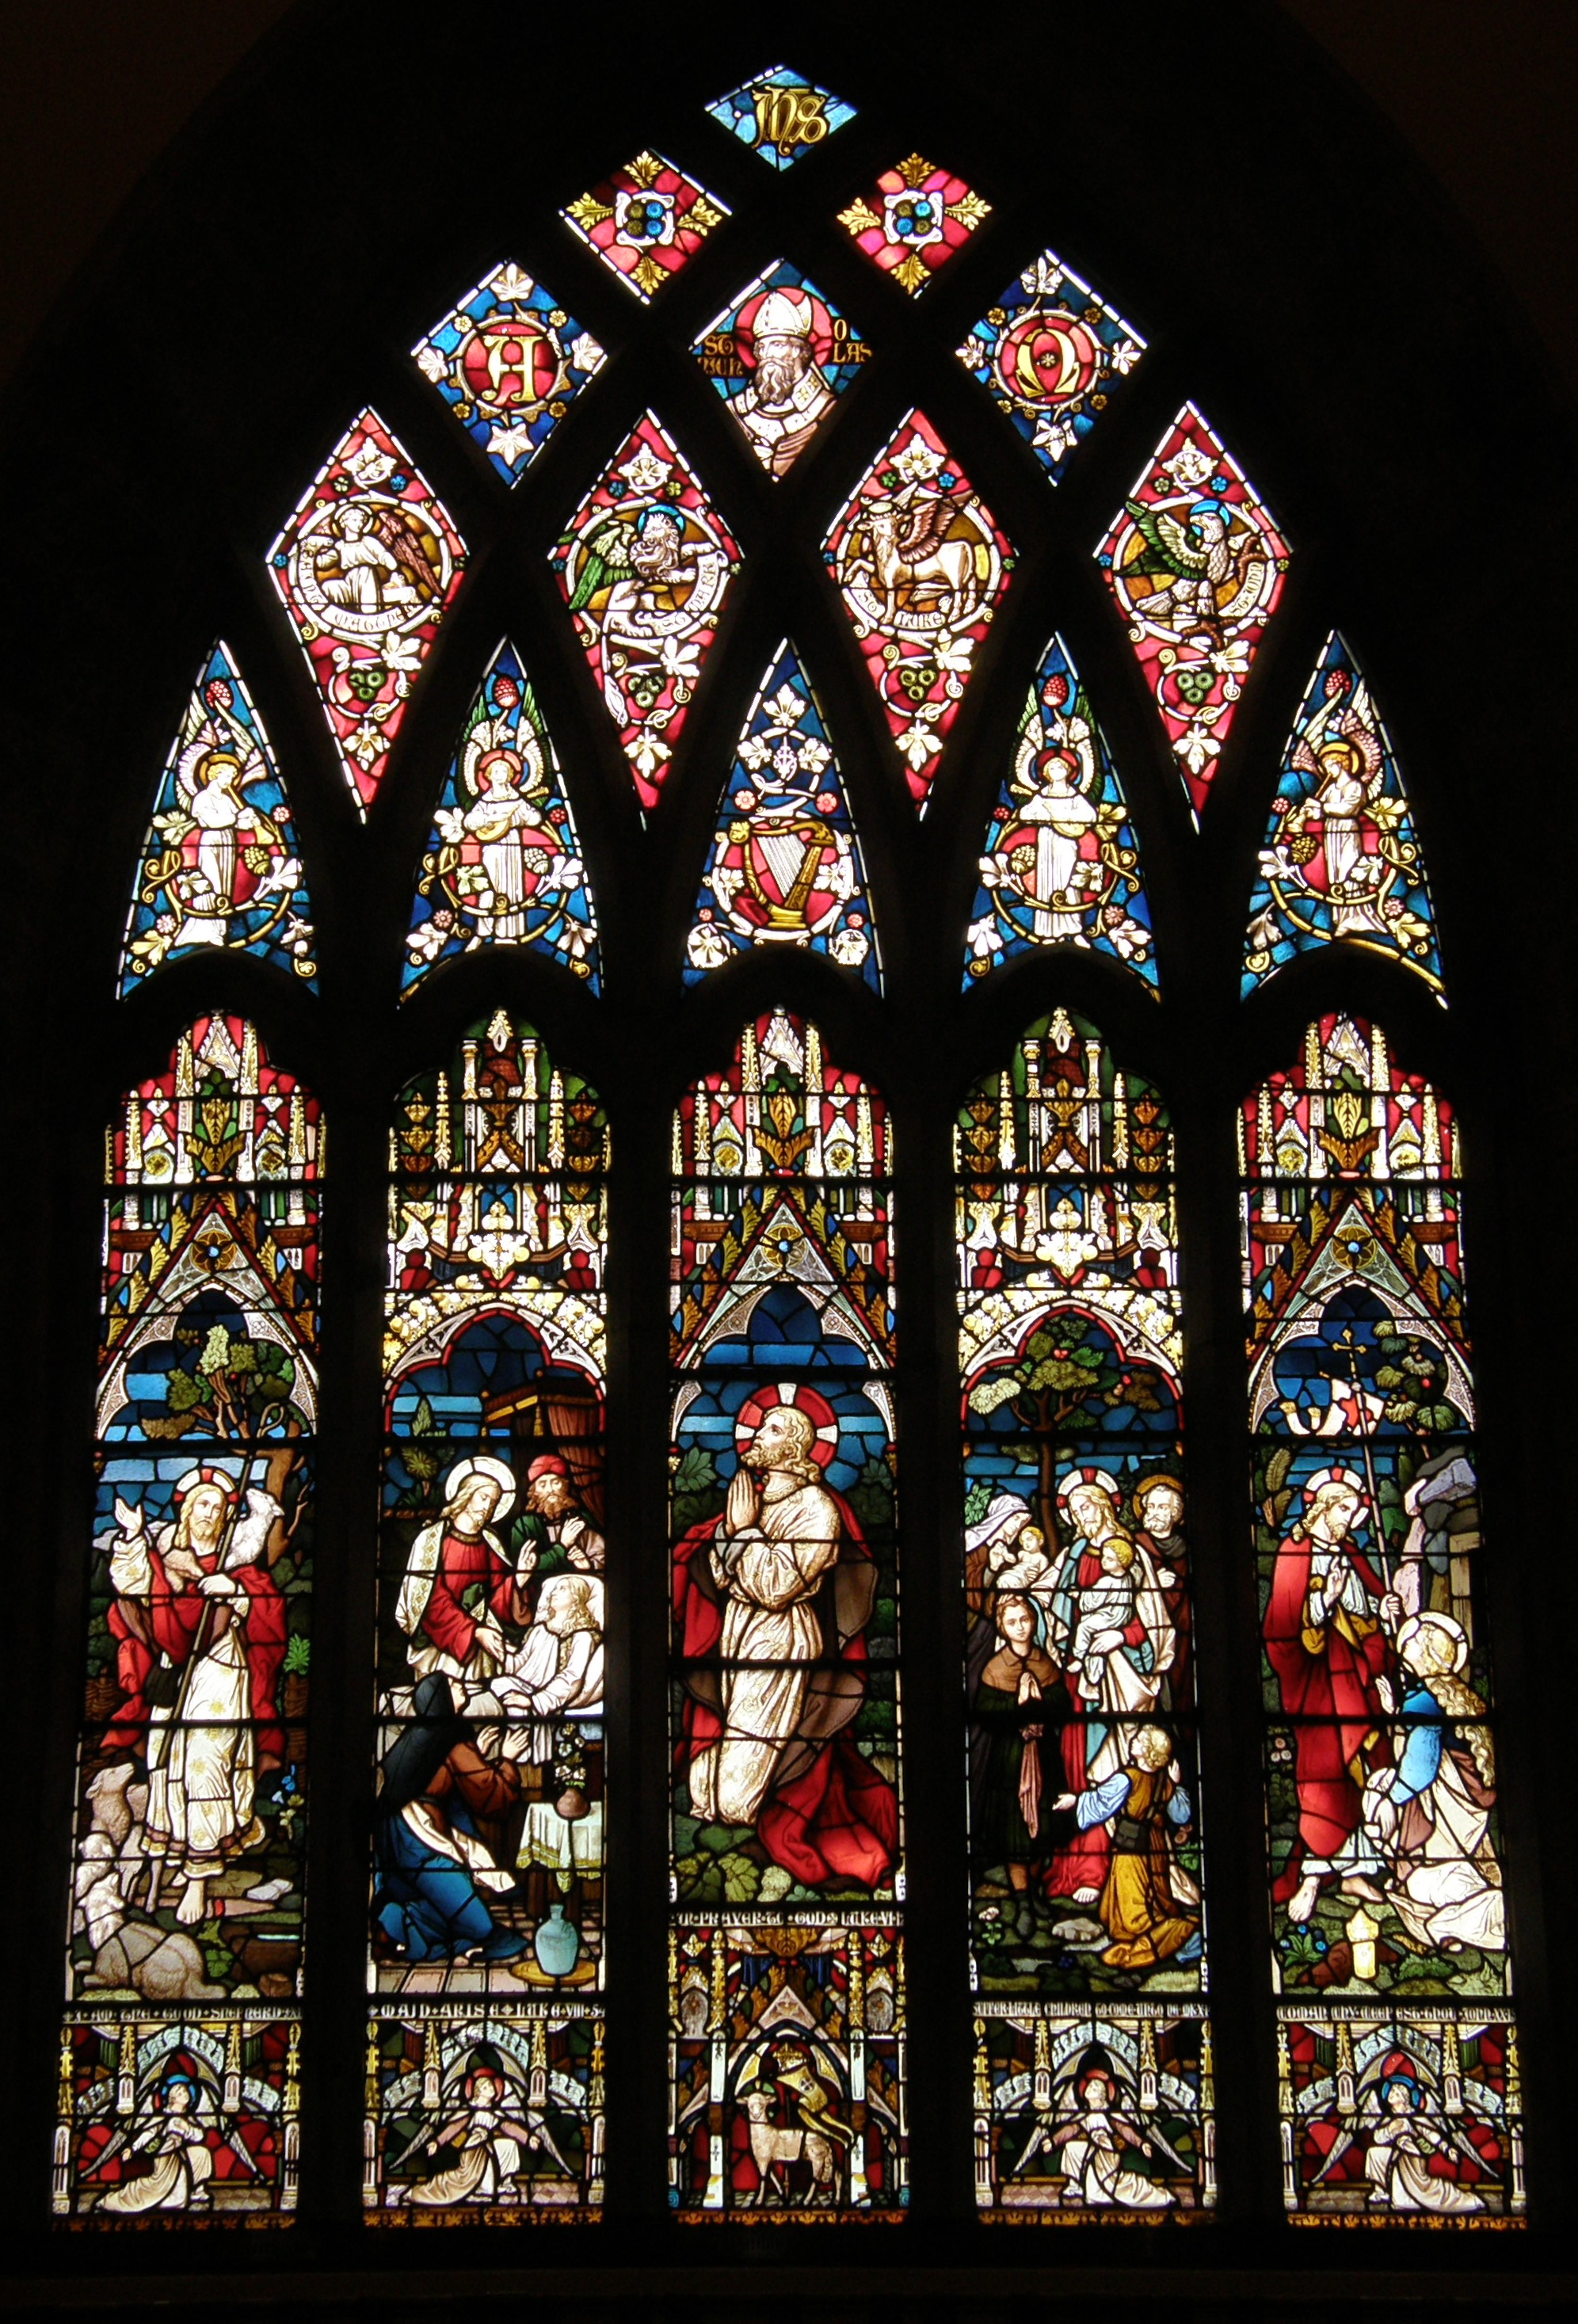 Altar Window, St. Nicholas Church, Galway